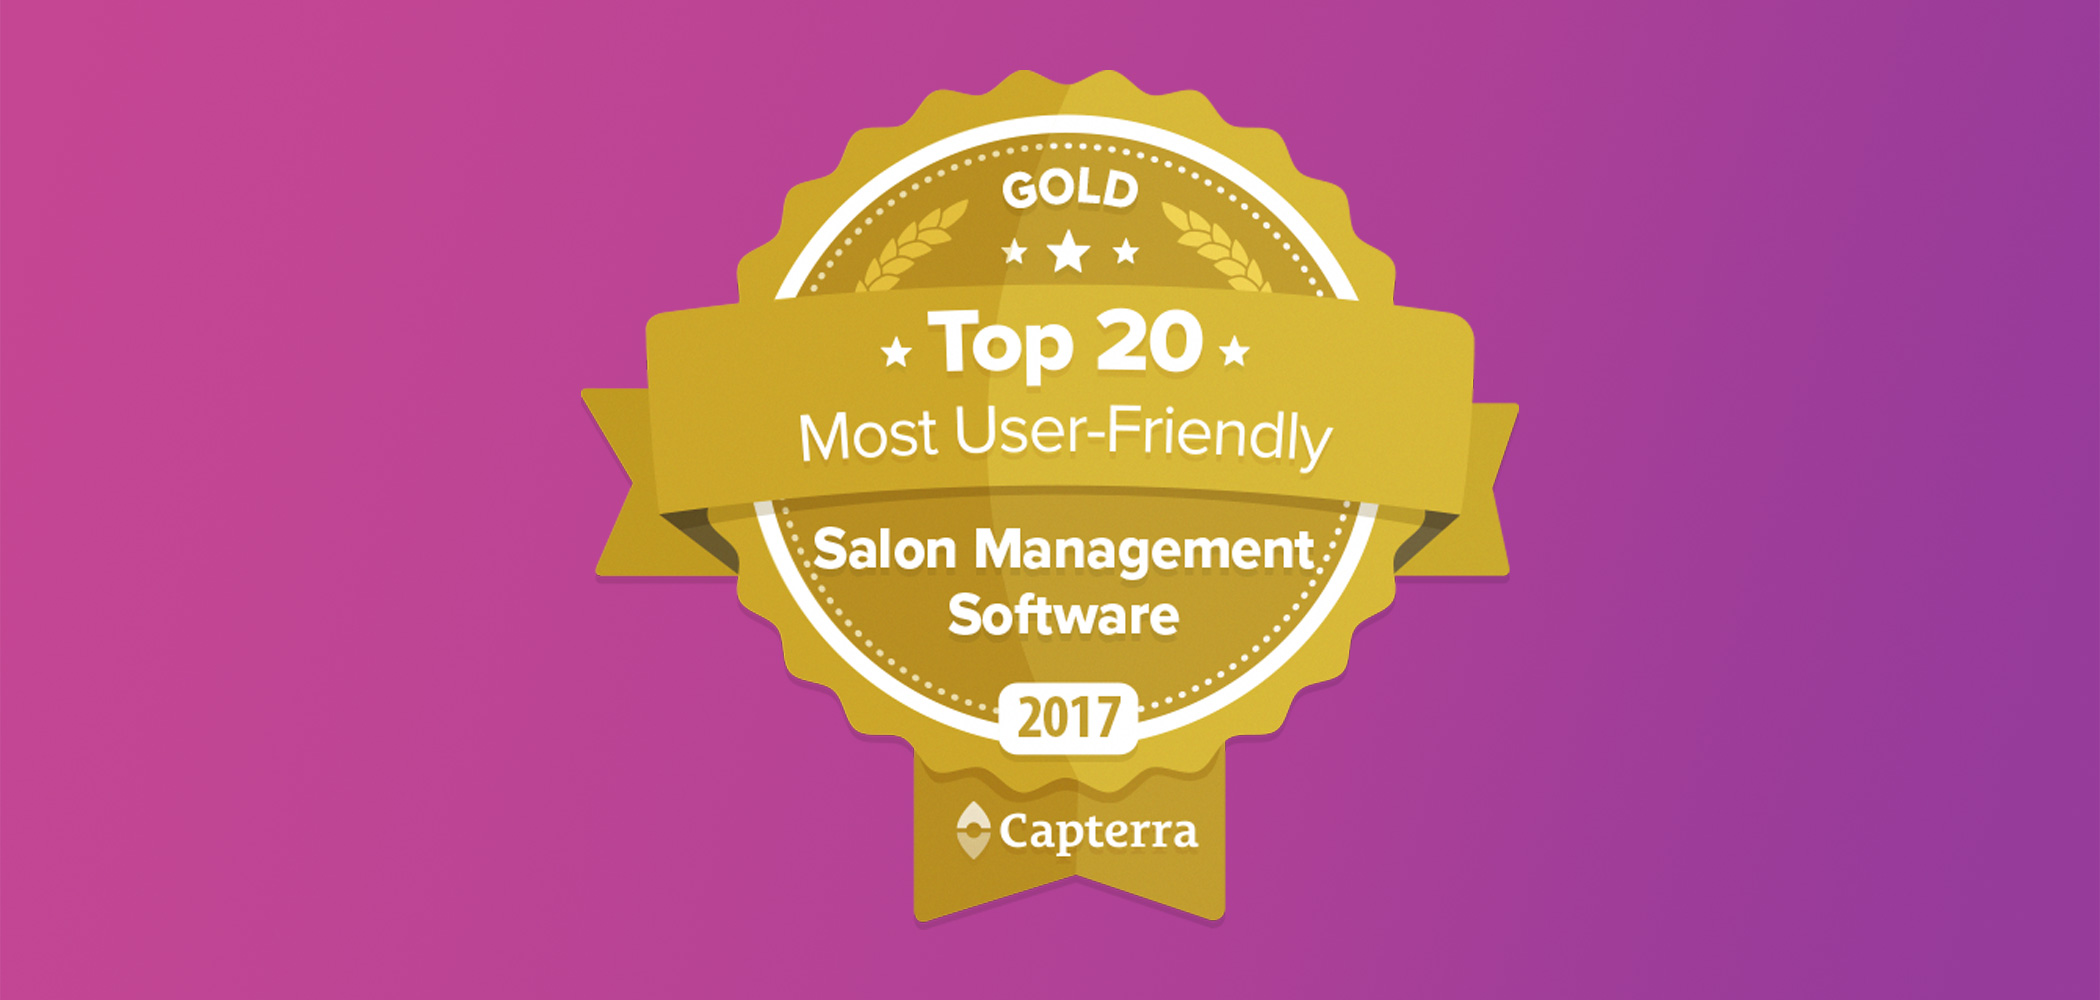 Setmore ranked #3 overall because they received a perfect score for training and support features all while having a clear, concise user interface.